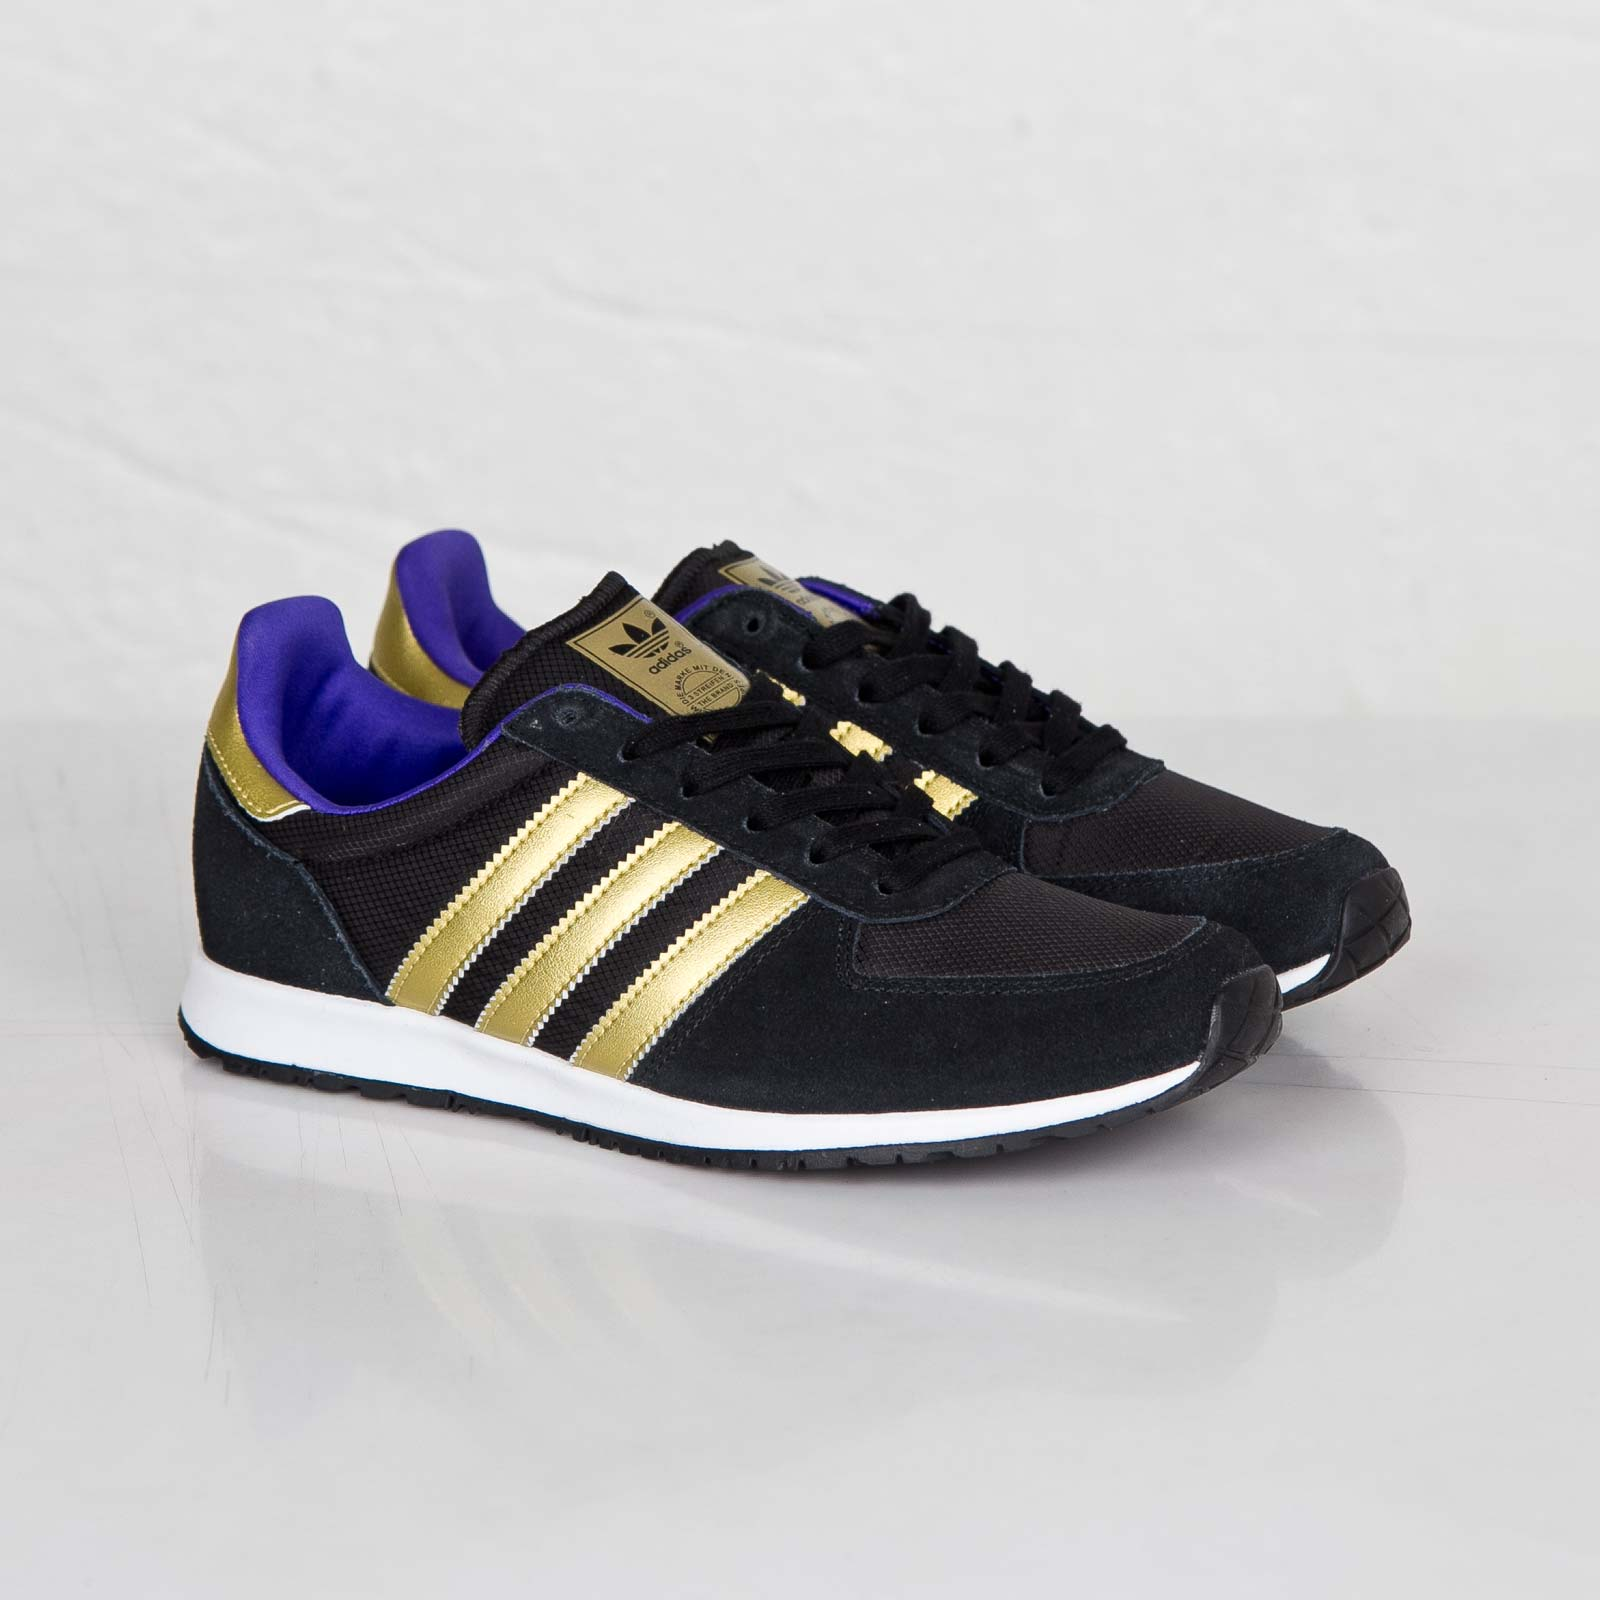 adidas originals adistar racer womens black gold retro. Black Bedroom Furniture Sets. Home Design Ideas